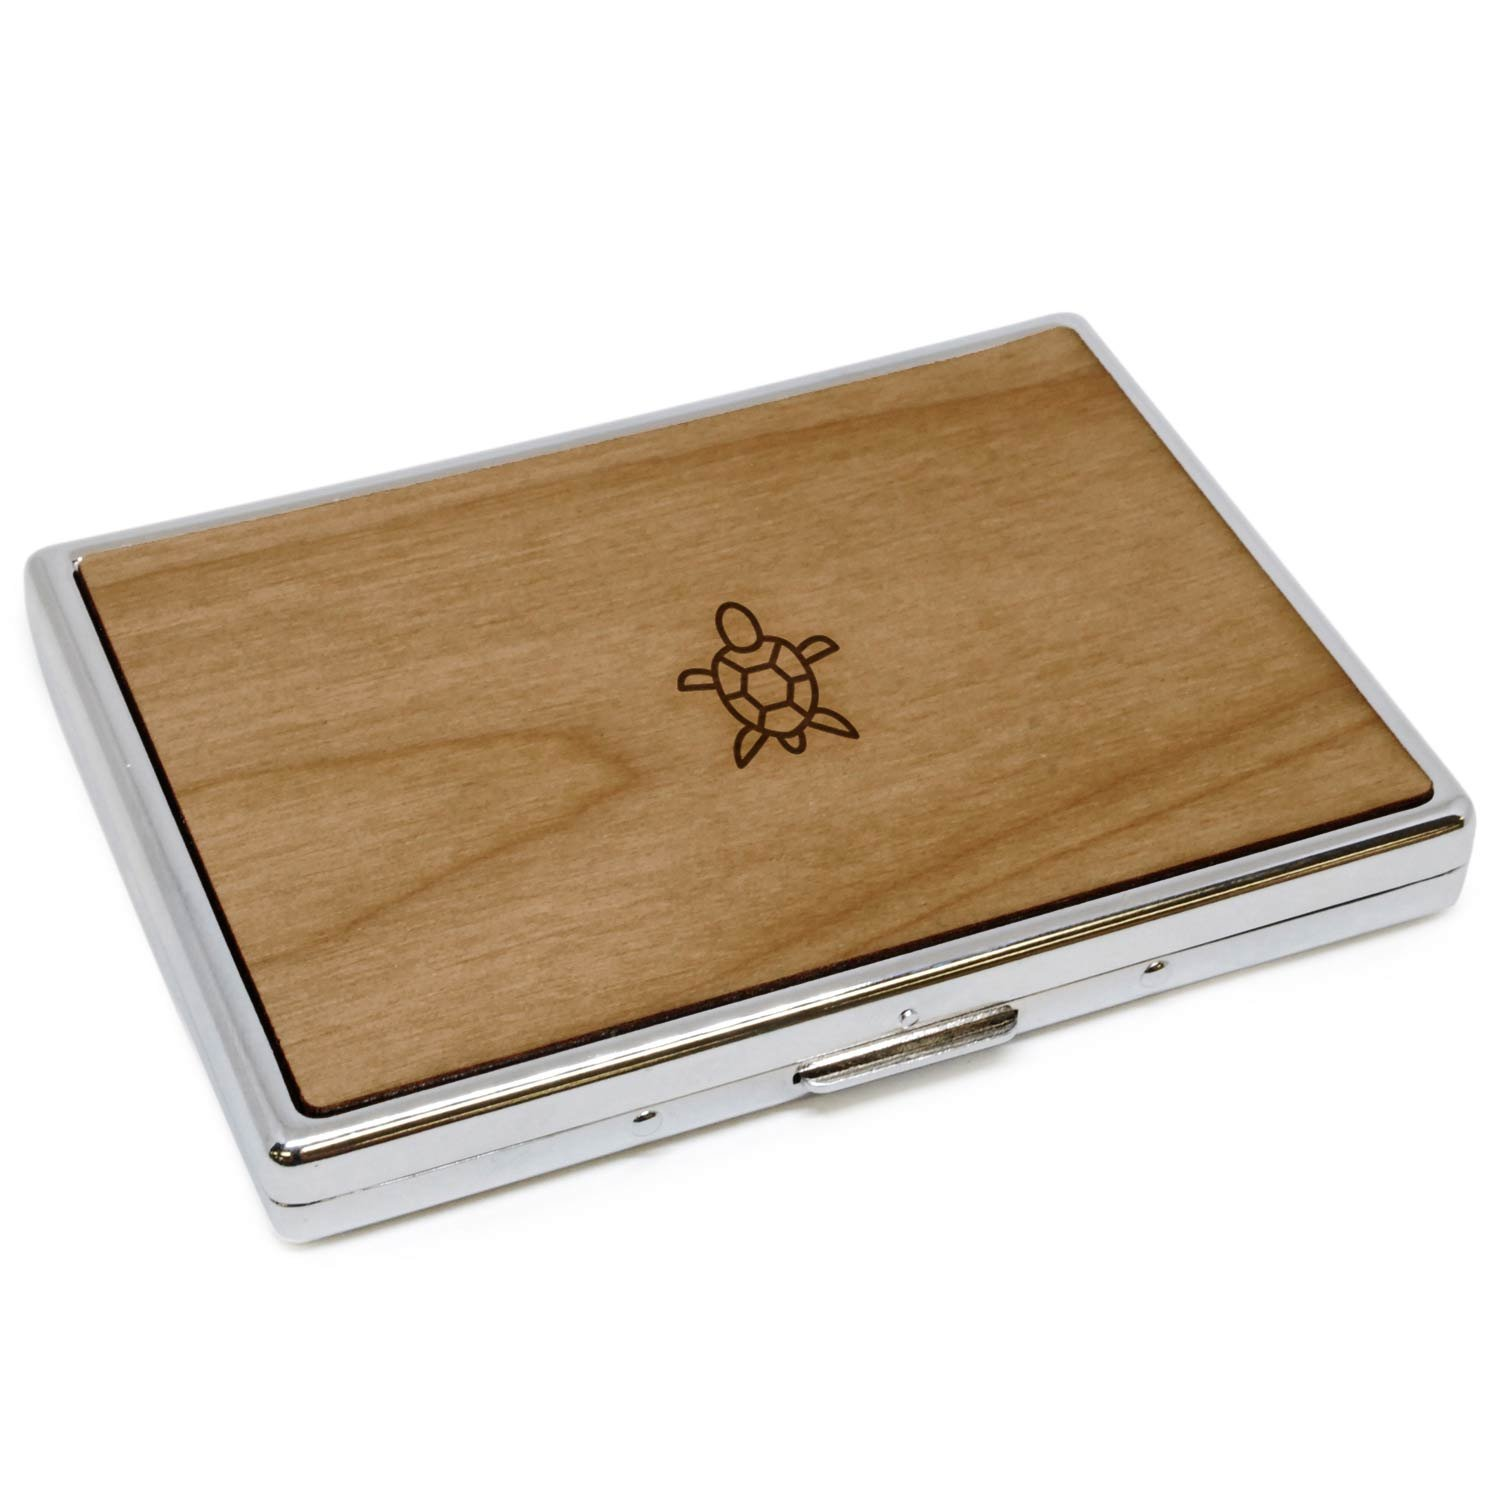 WOODEN ACCESSORIES COMPANY Wooden Cigarette Cases With Laser Engraved Sea Turtle Design - Stainless Steel Cigarette Case With Wooden Panel - Perfect Fit For Regular And King Size Cigarettes